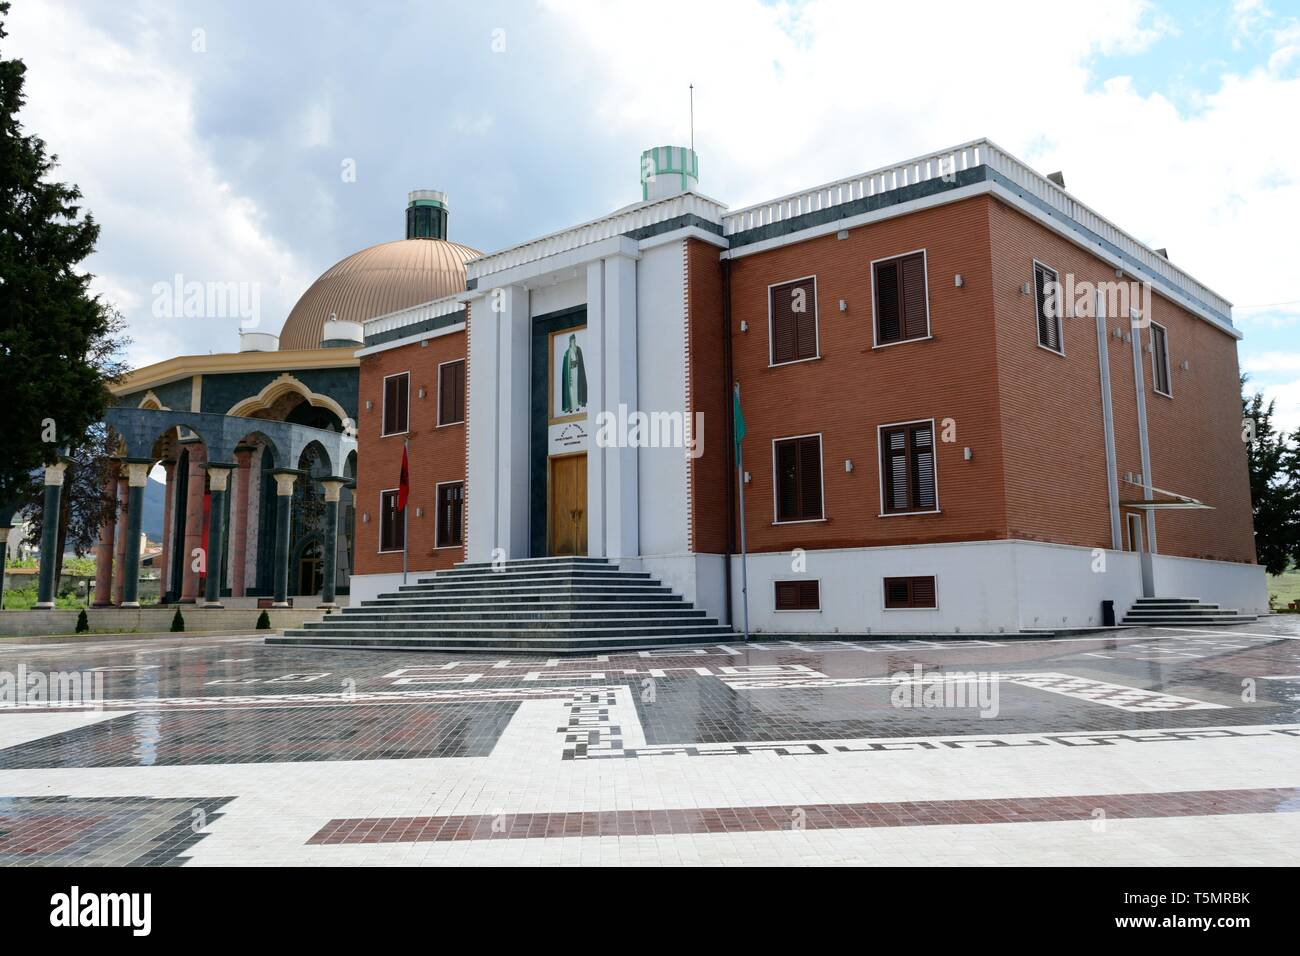 Bektashi World Centre Bektashi order Headquarters Tirano Albania - Stock Image